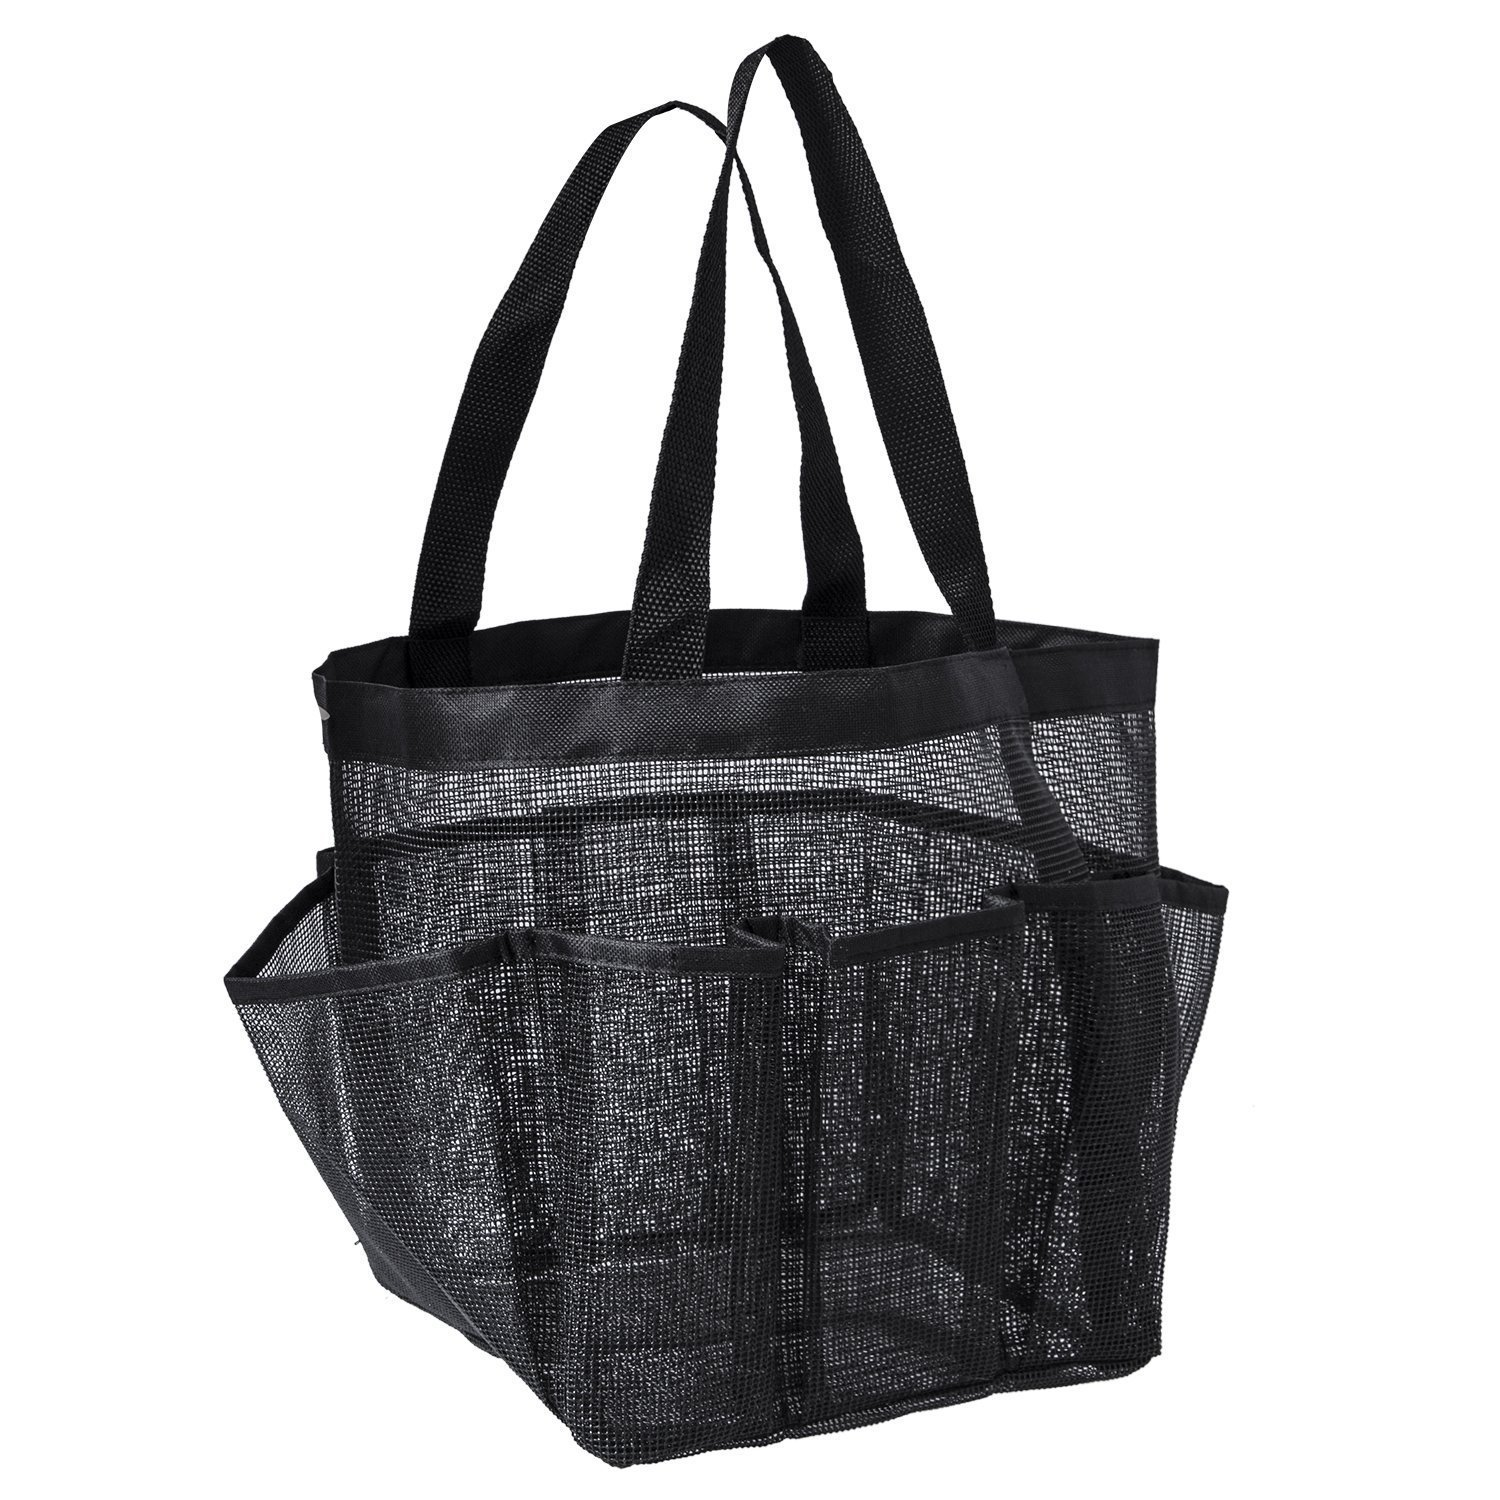 Portable Mesh Shower Caddy Quick Dry Shower Tote Hanging